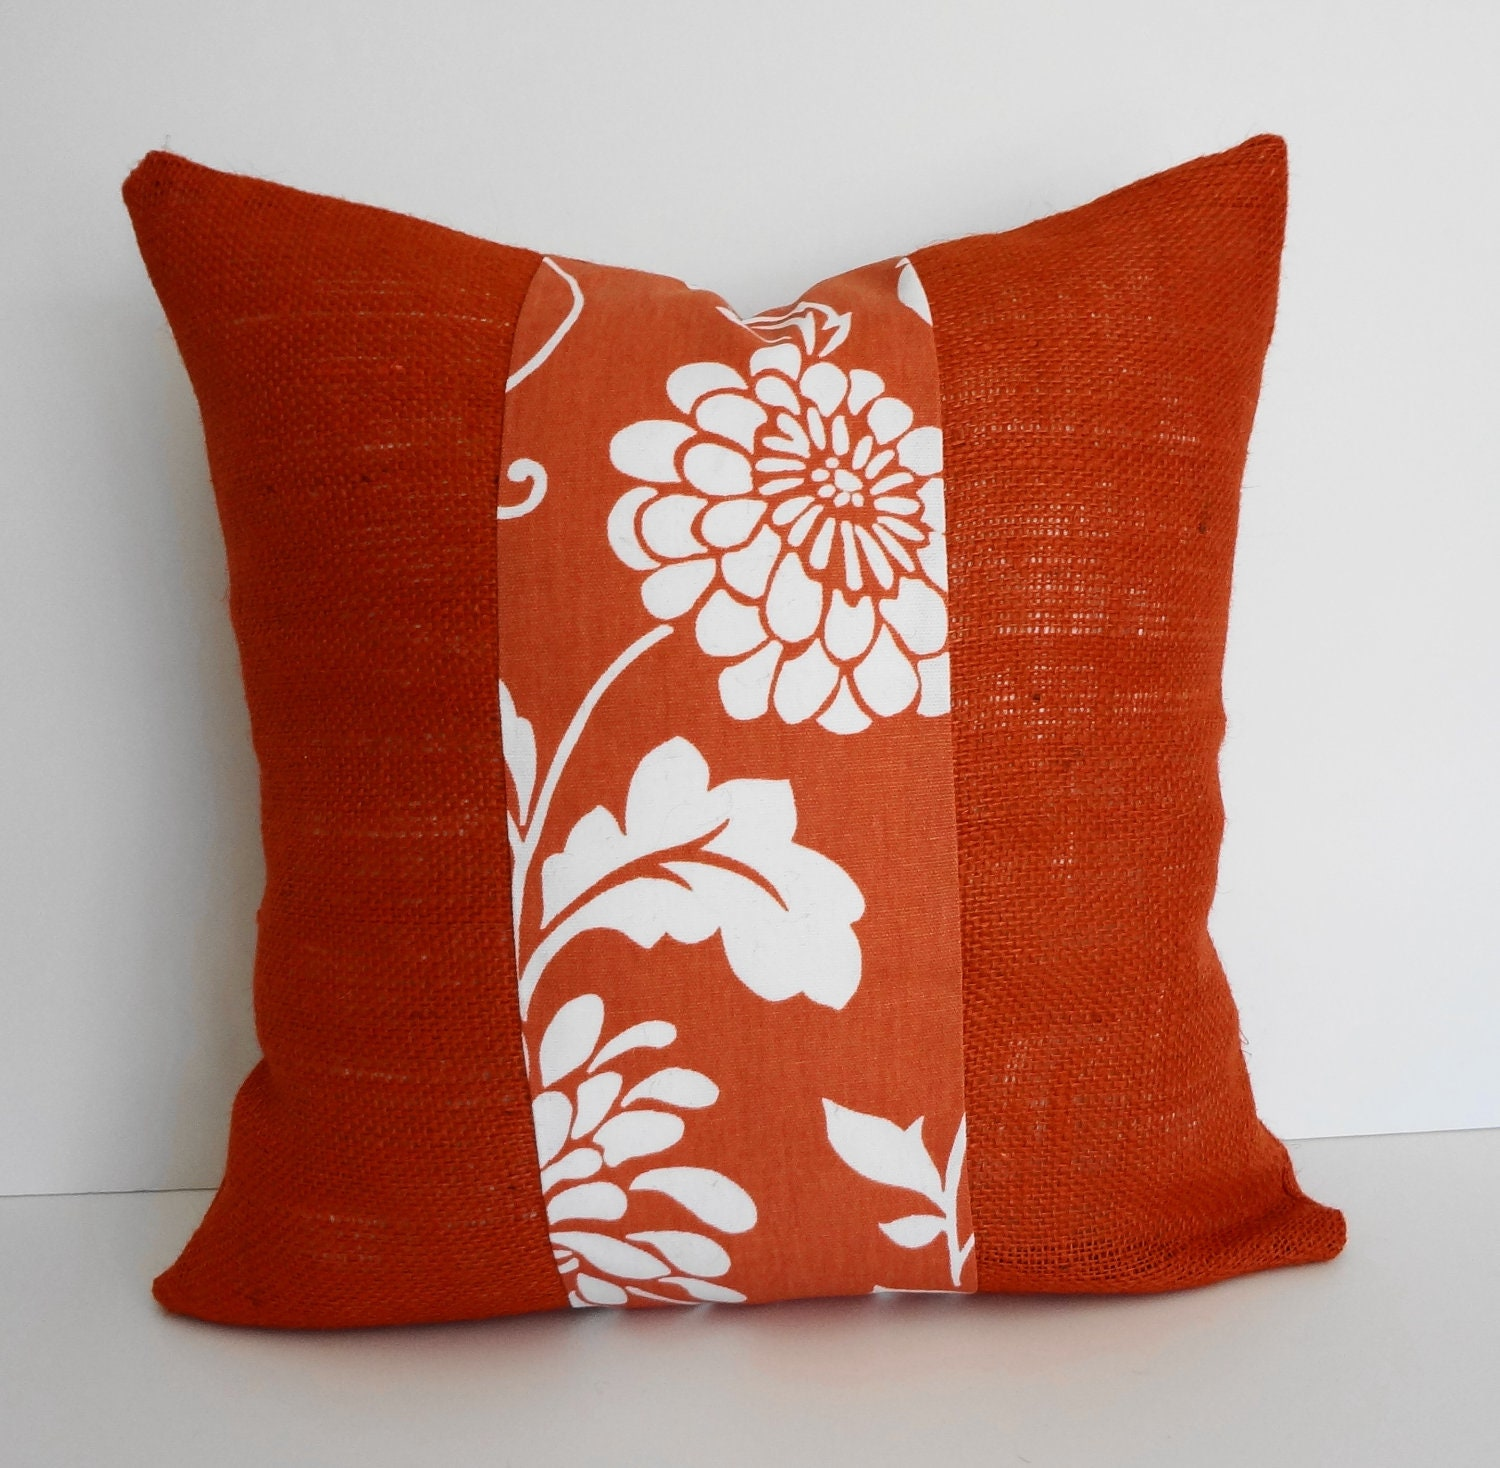 Throw Pillow Insert Cover : Coral Burlap Decorative Pillow Cover 18 x 18 Orange and